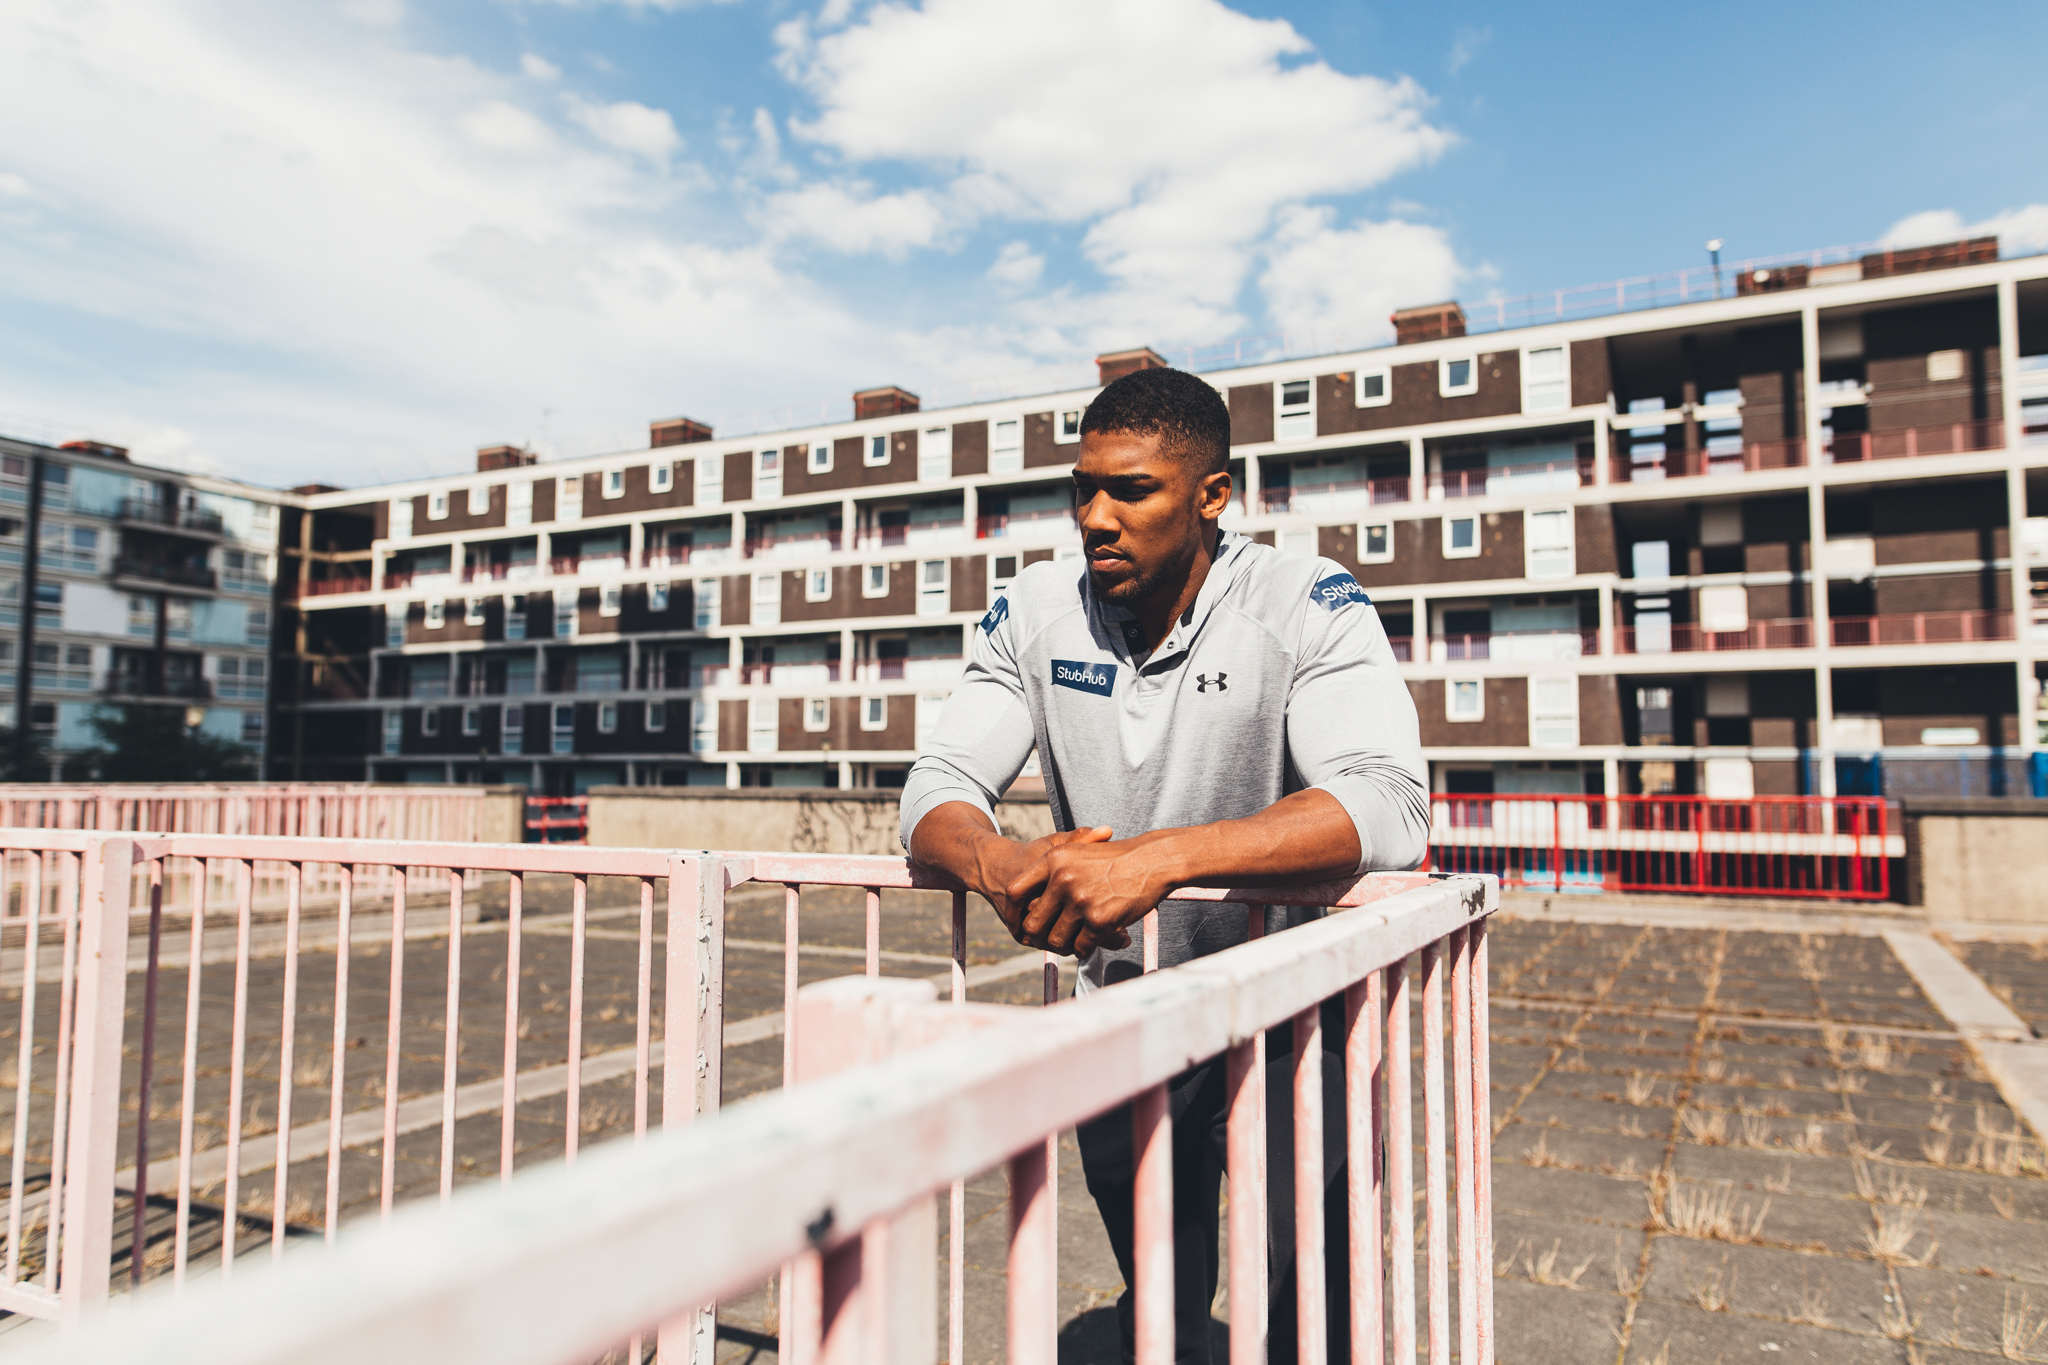 Anthony Joshua leaning on a railing